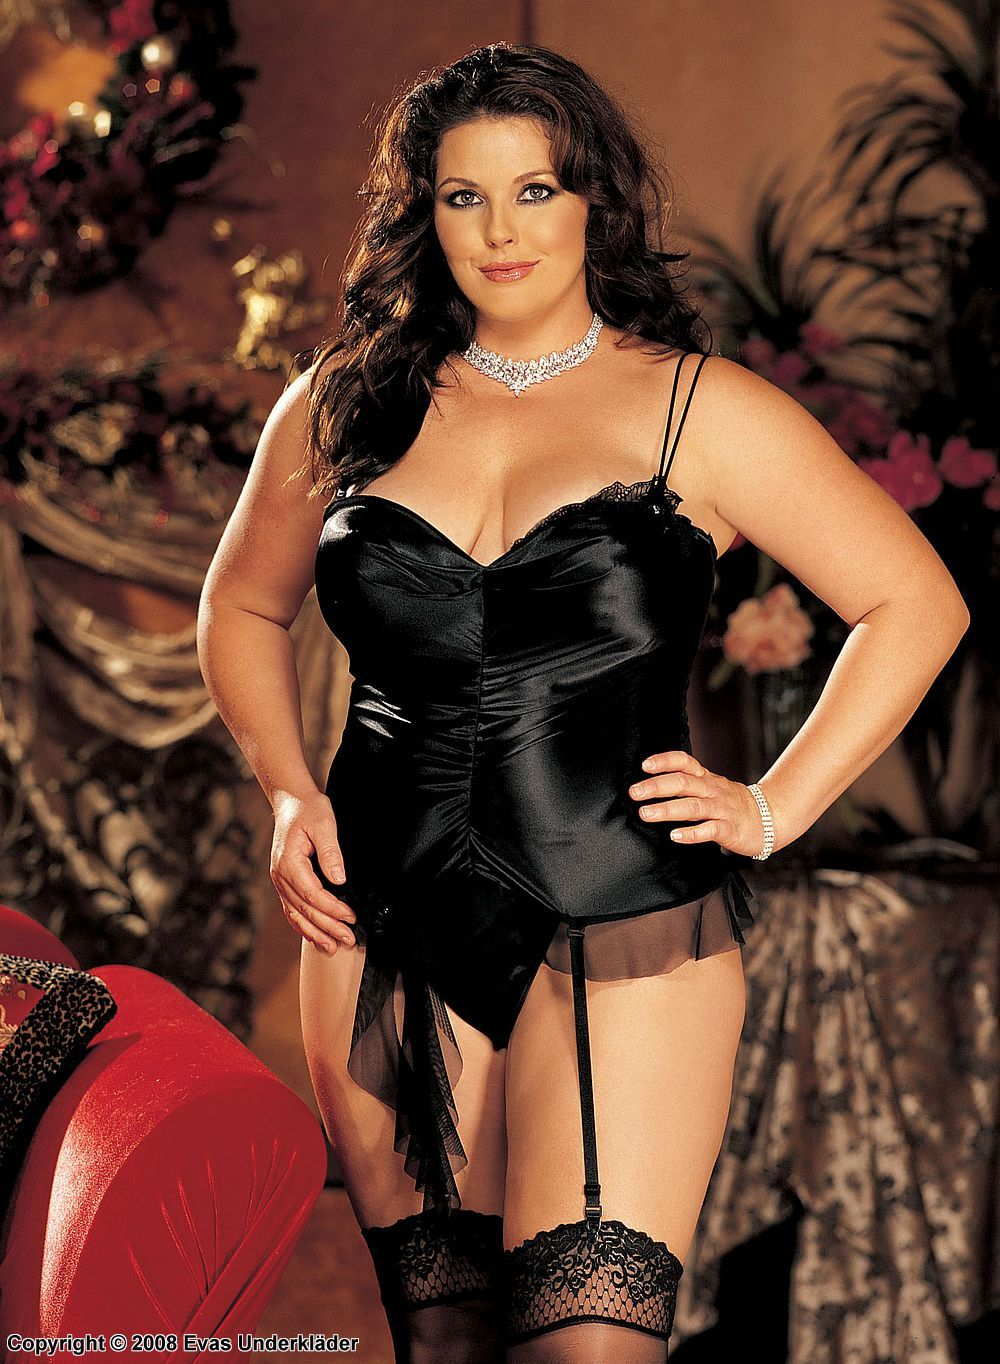 fcf19b6b6 Shirley of Hollywood plus size lingerie model